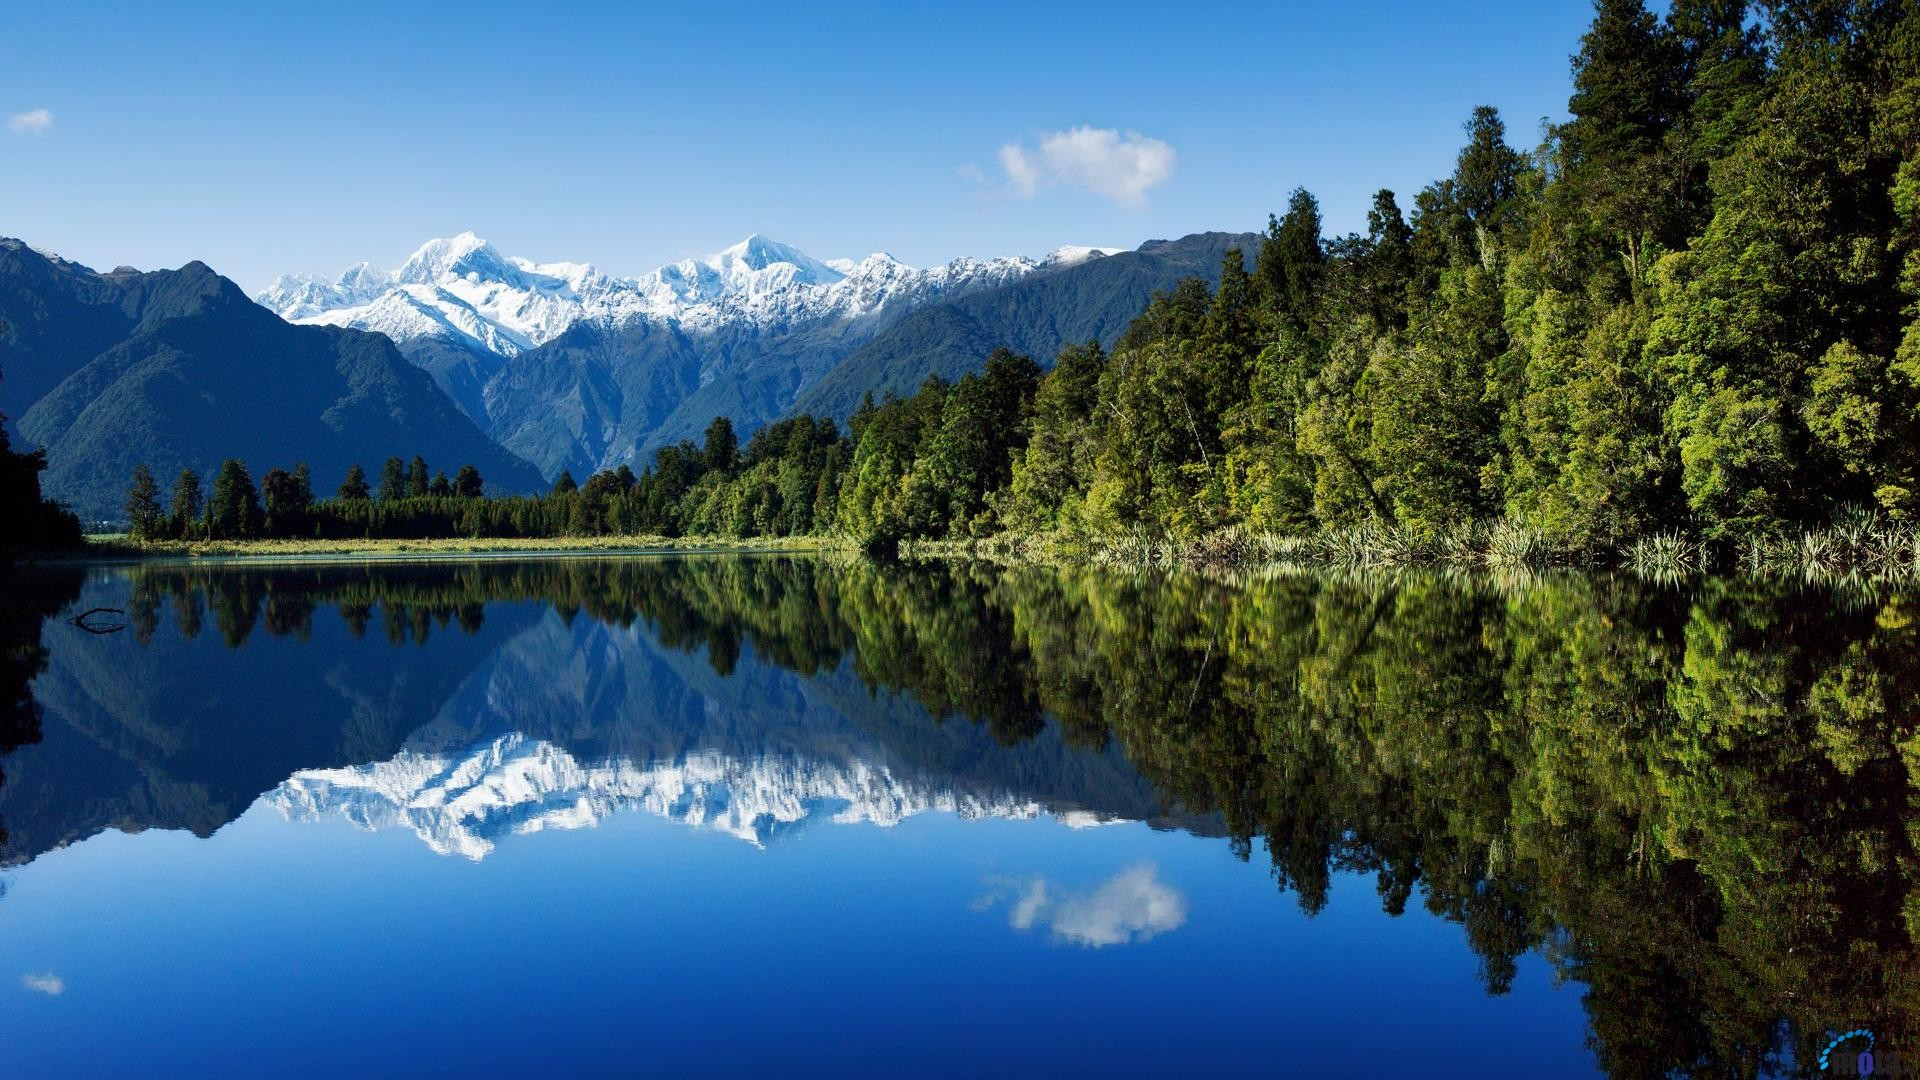 Wonderful Wallpaper Mountain Smartphone - 154965-new-zealand-wallpaper-1920x1080-for-phones  Pic_452690.jpg